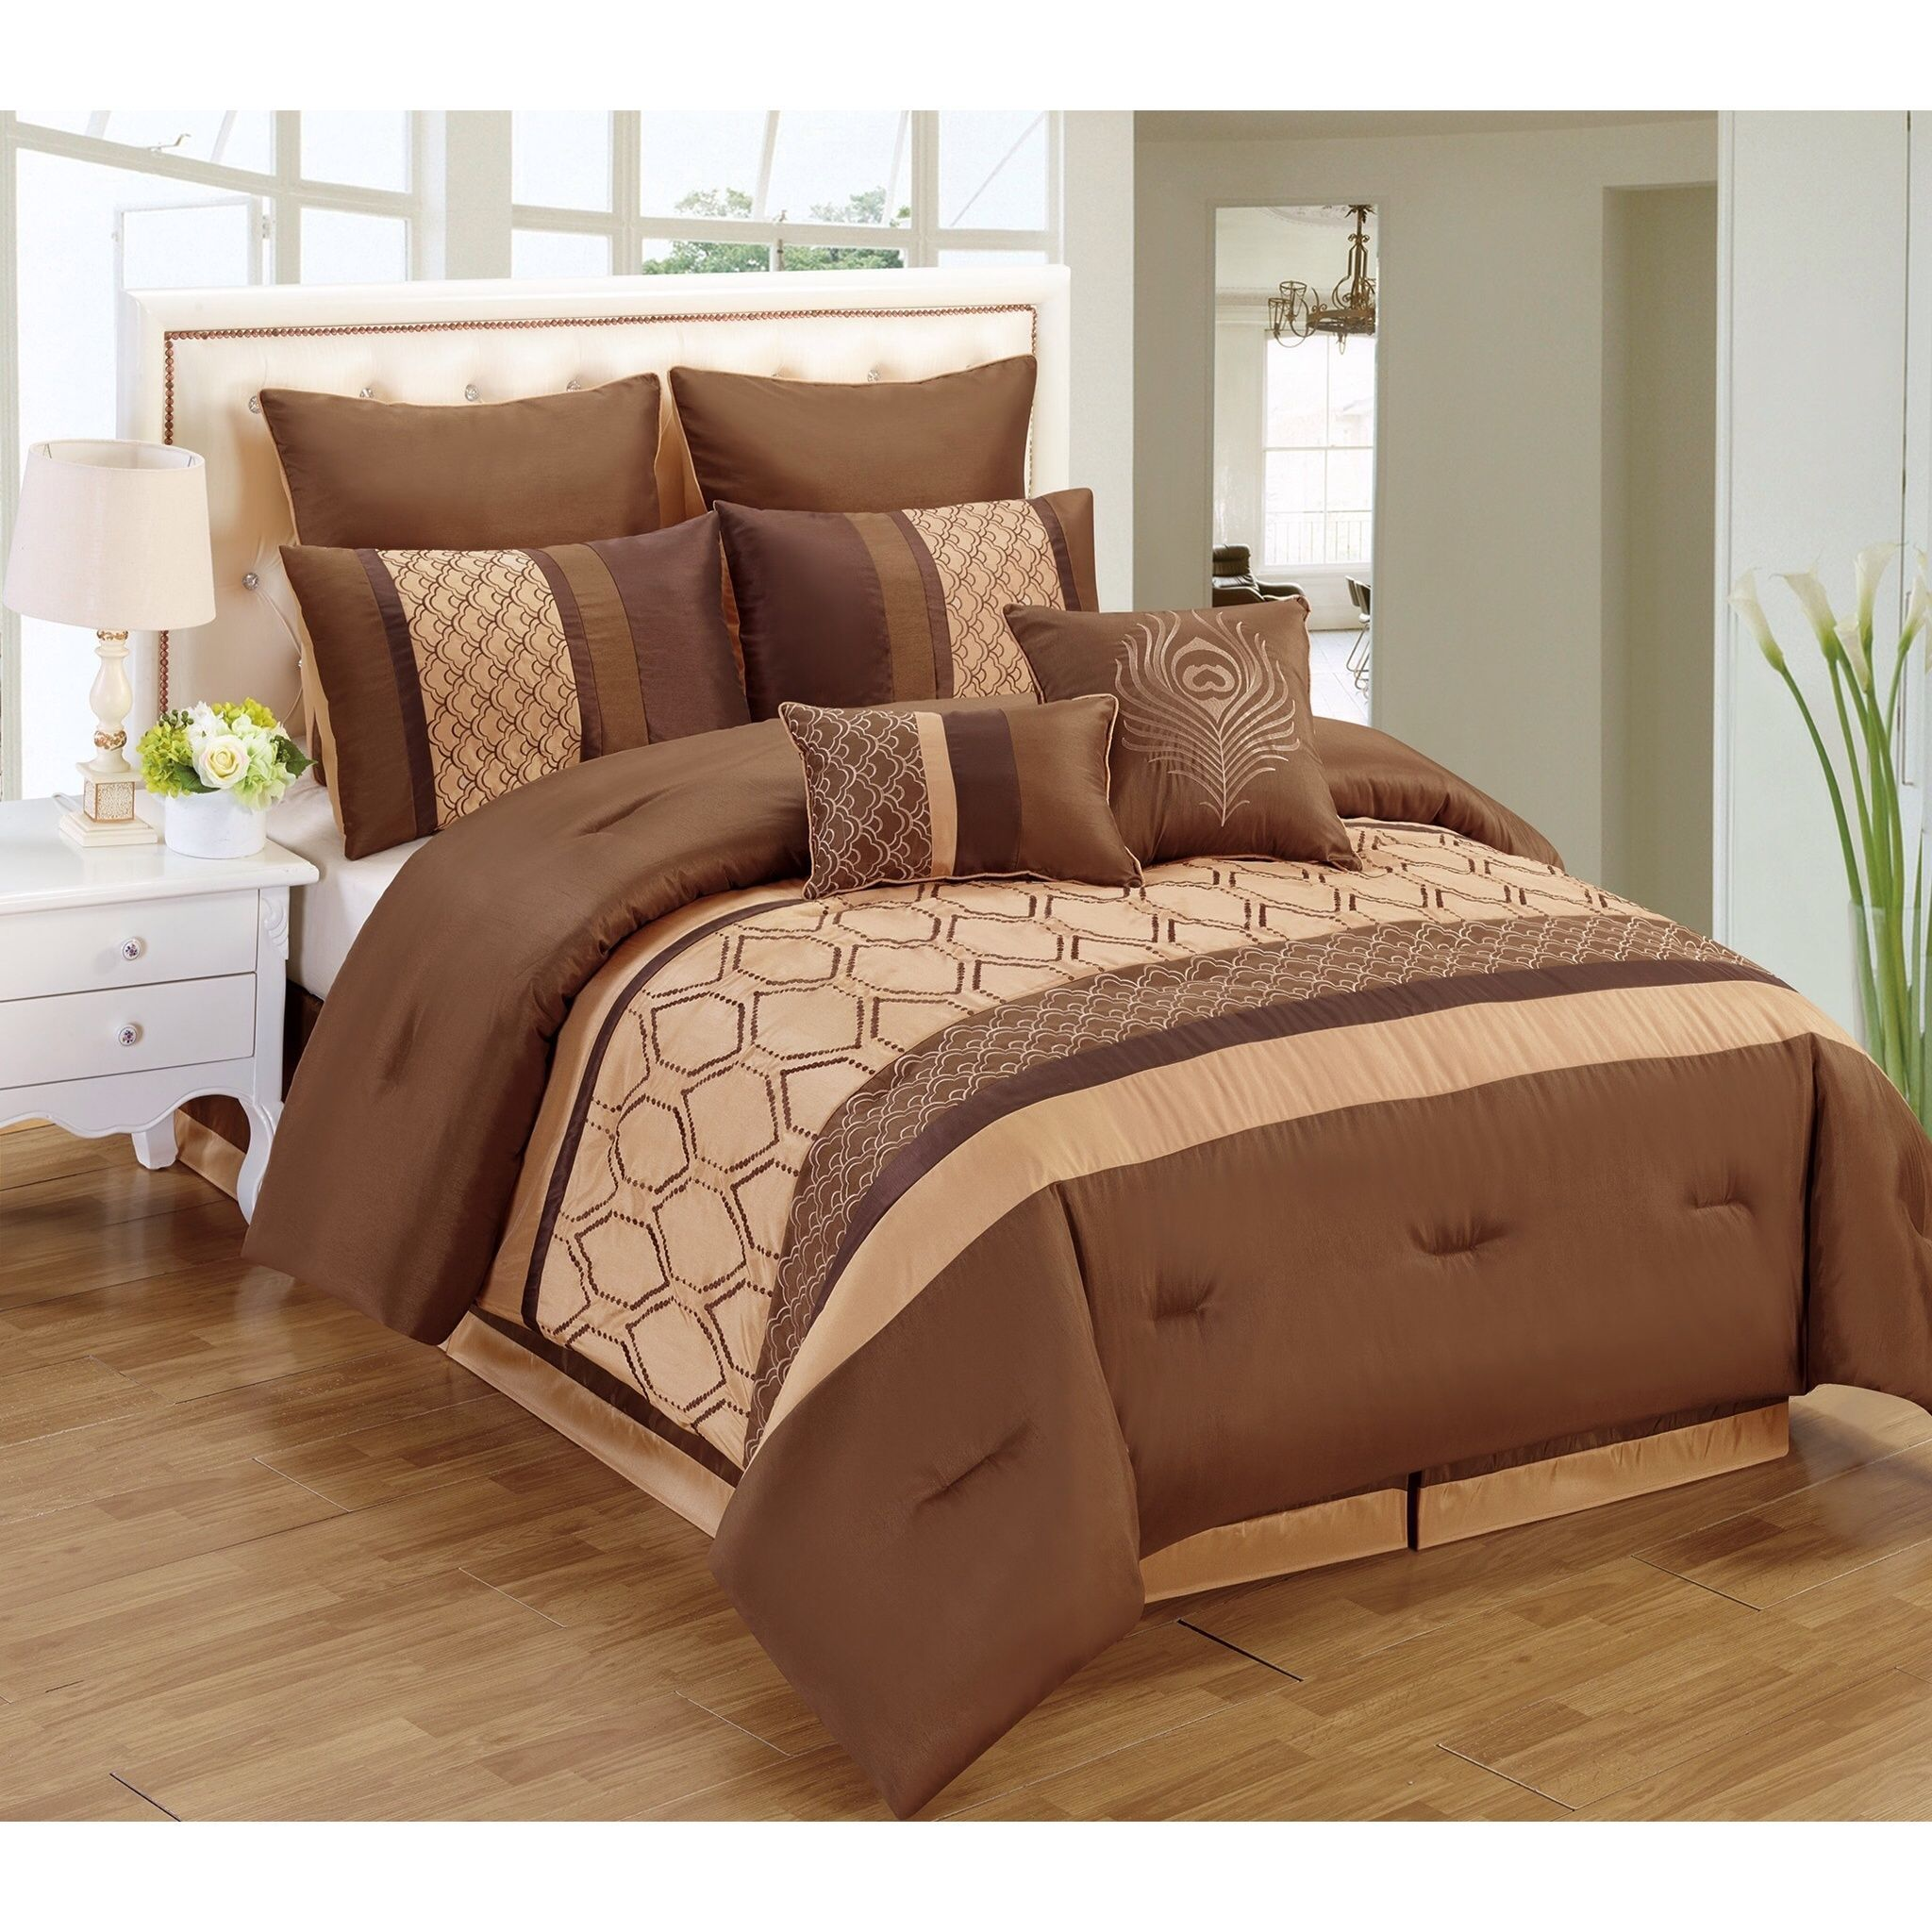 Overstock Com Online Shopping Bedding Furniture Electronics Jewelry Clothing More Comforter Sets Contemporary Bedroom Duvet Bedding Sets